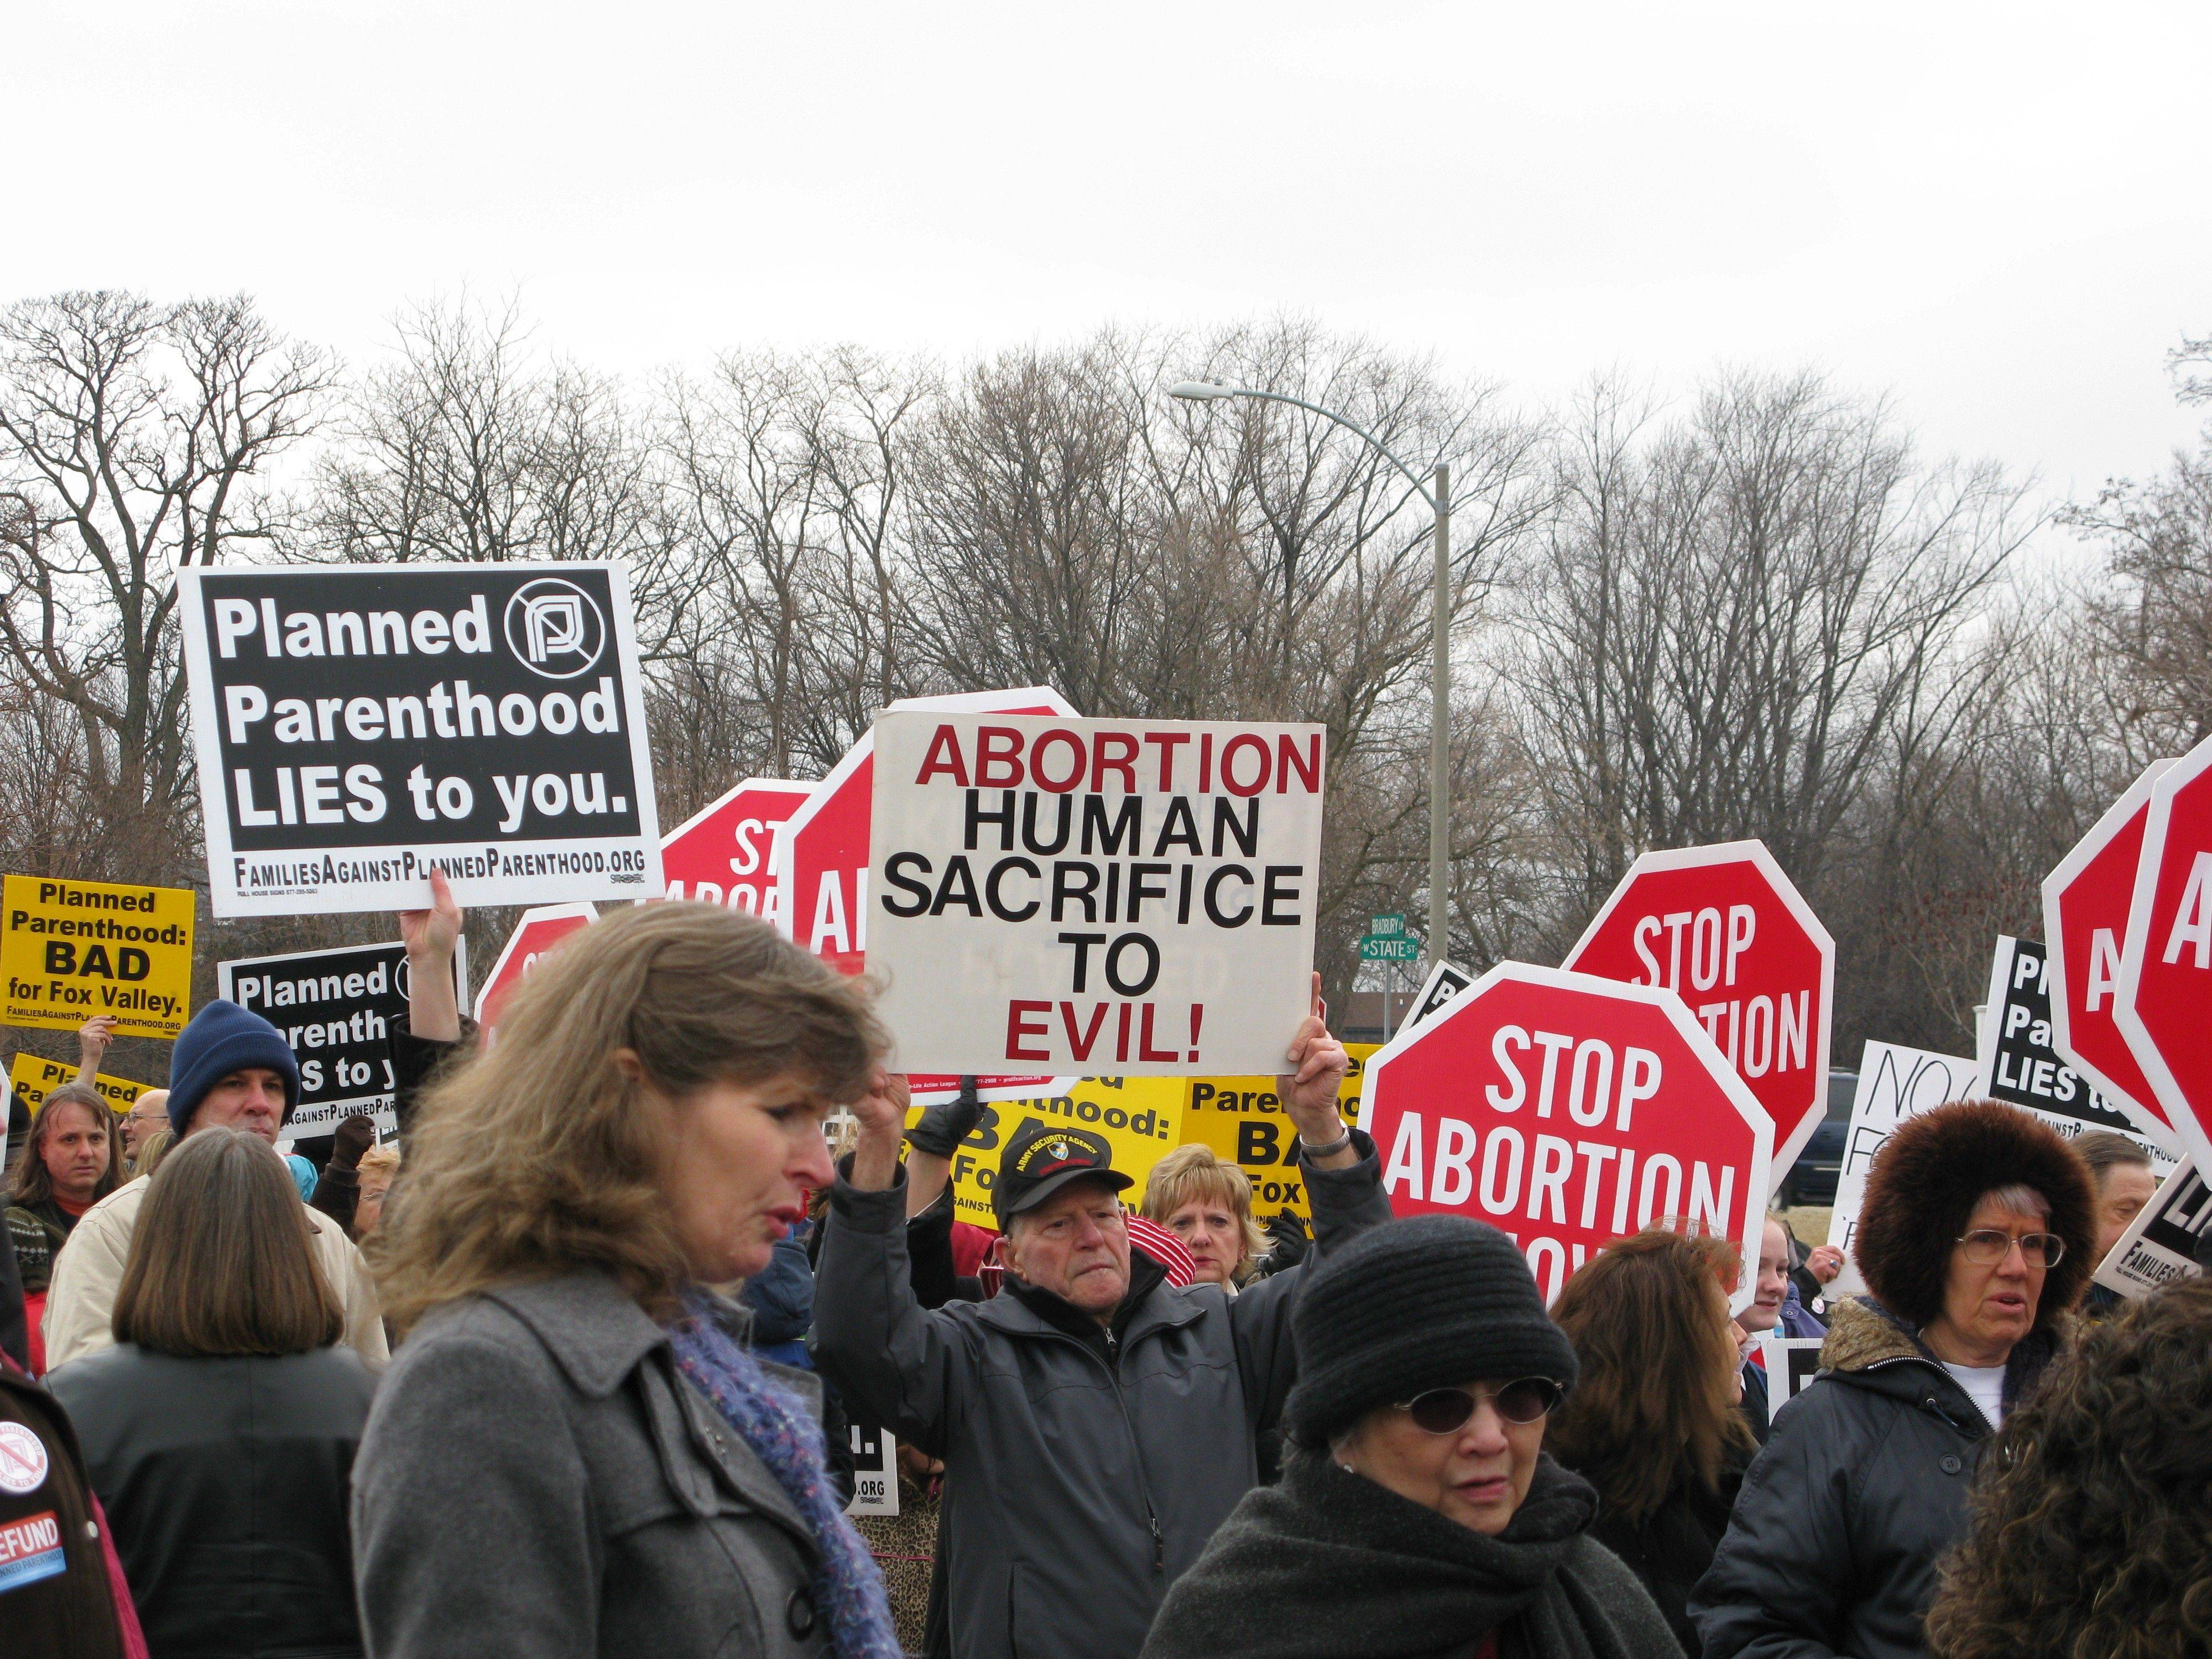 Abortion opponents attempted to chant down abortion rights advocates Monday outside Congressman Randy Hultgren's office. The two sides hosted competing rallies as they each view the pending cut of federal funds for Planned Parenthood as a major social and moral battle for the current Congress.